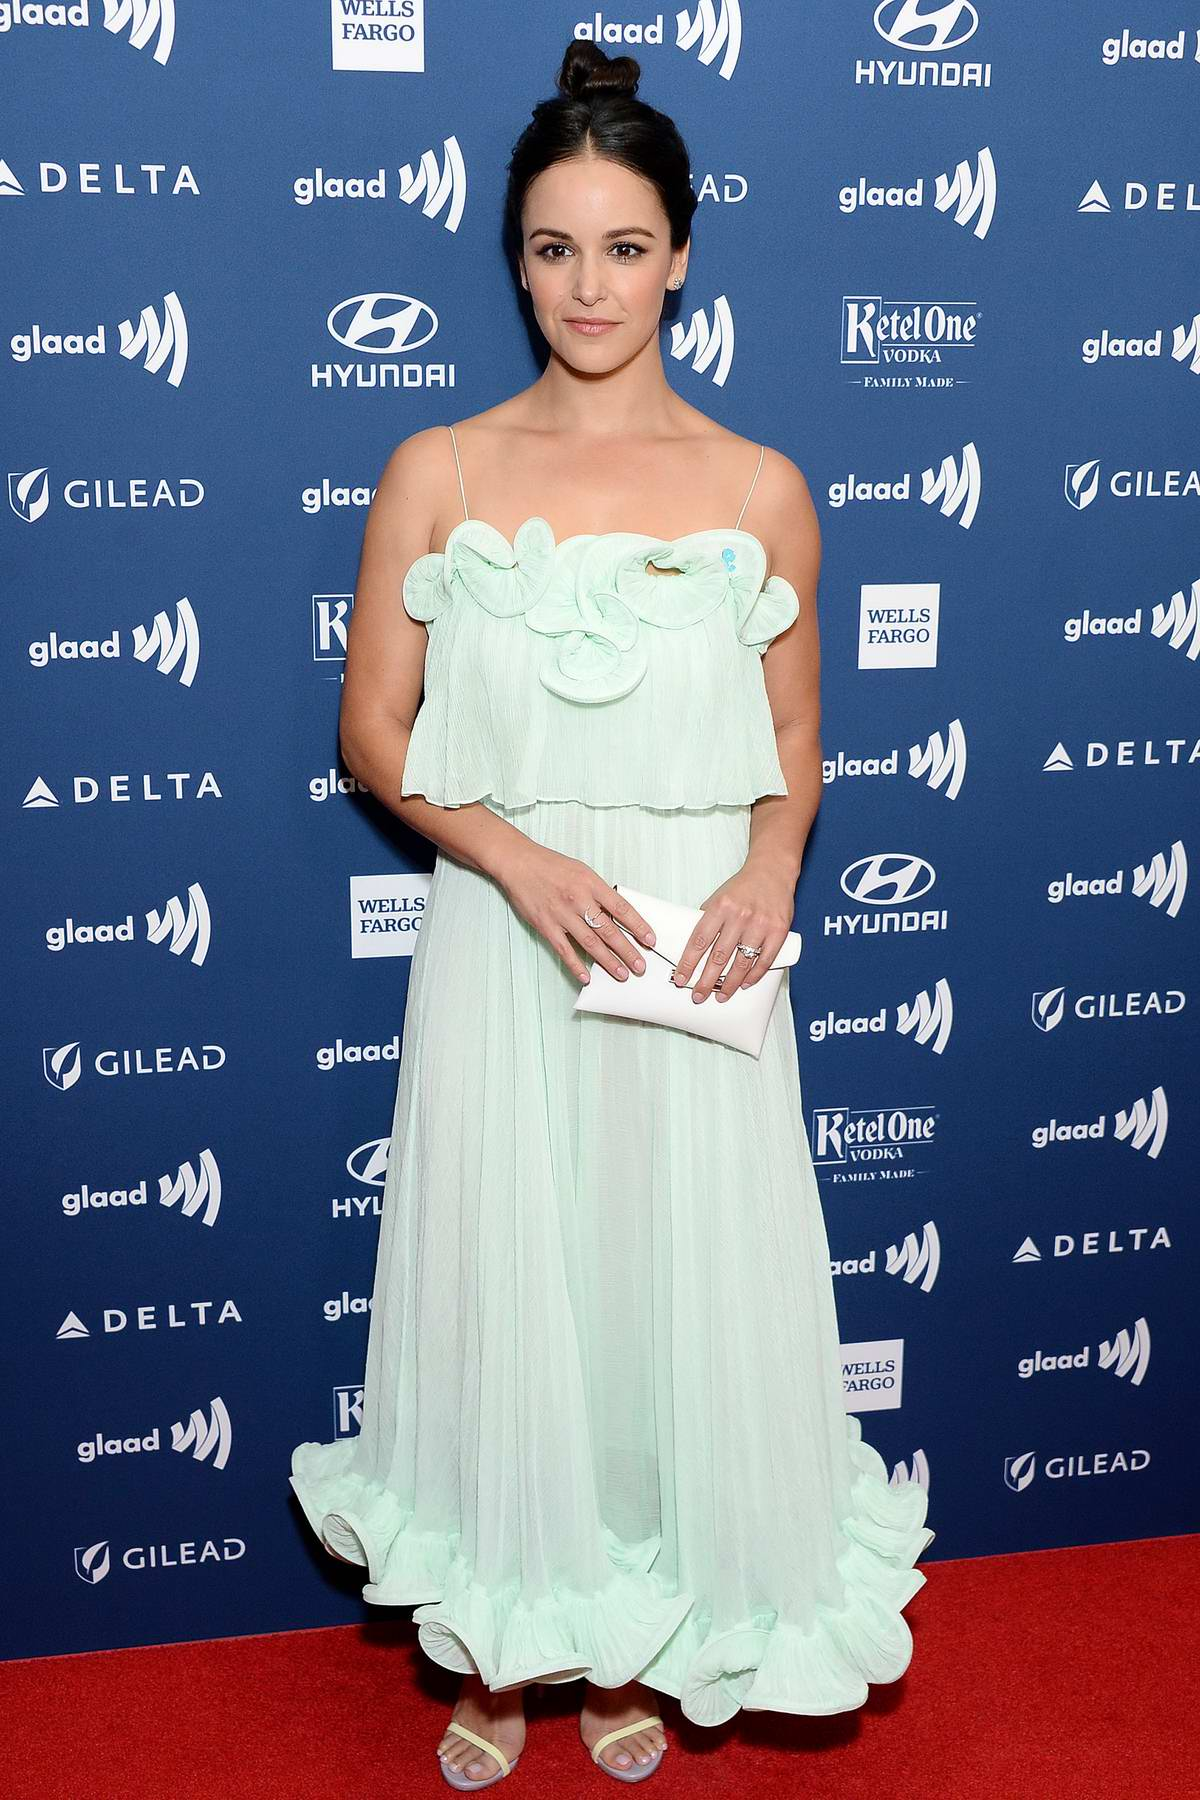 Melissa Fumero attends the 30th Annual GLAAD Media Awards at The Beverly Hilton Hotel in Beverly Hills, California